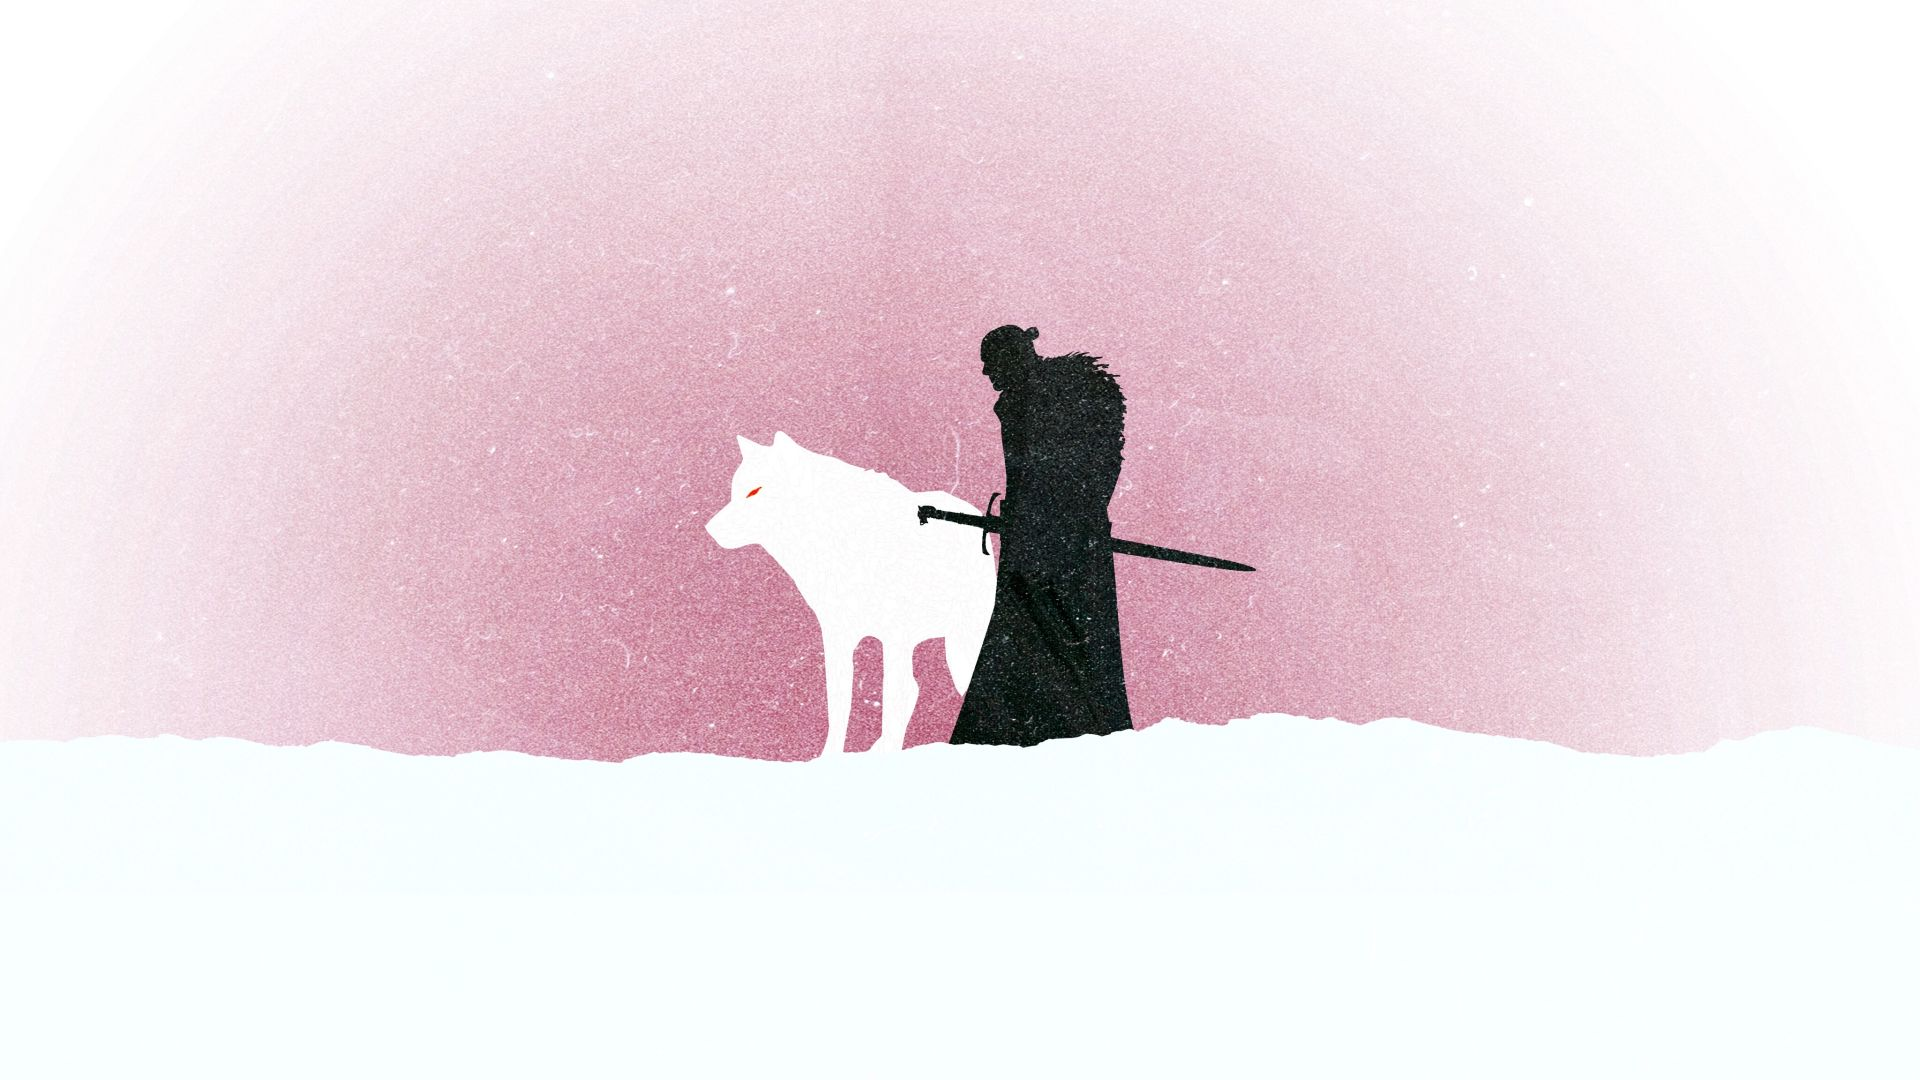 Jon Snow and wolf, Game of Thrones